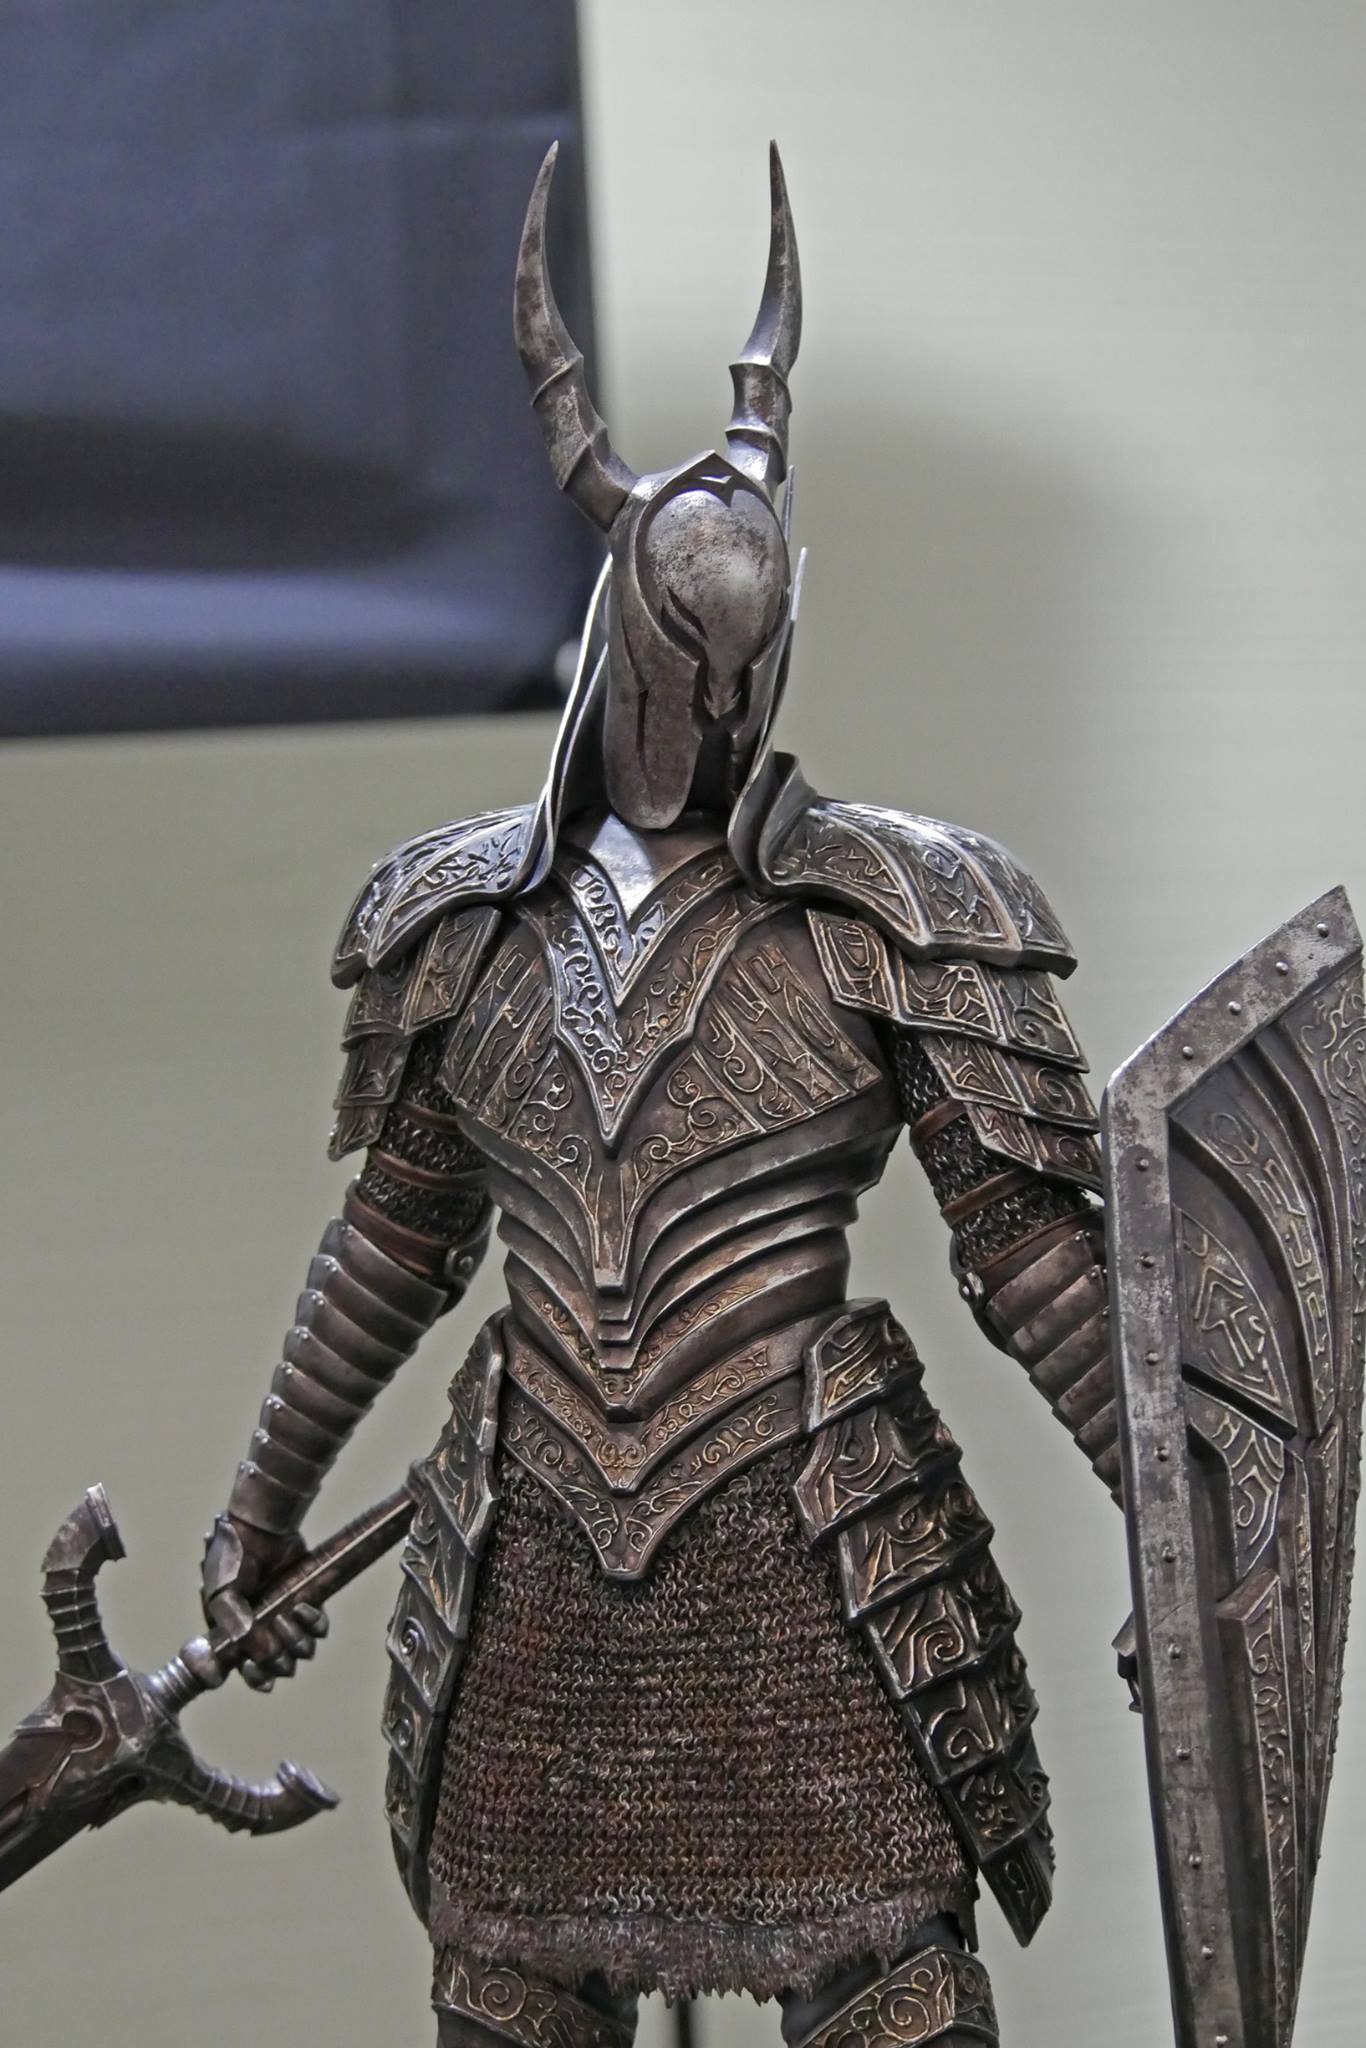 Gecco Black Knight Statue from Dark Souls Revealed - The ...